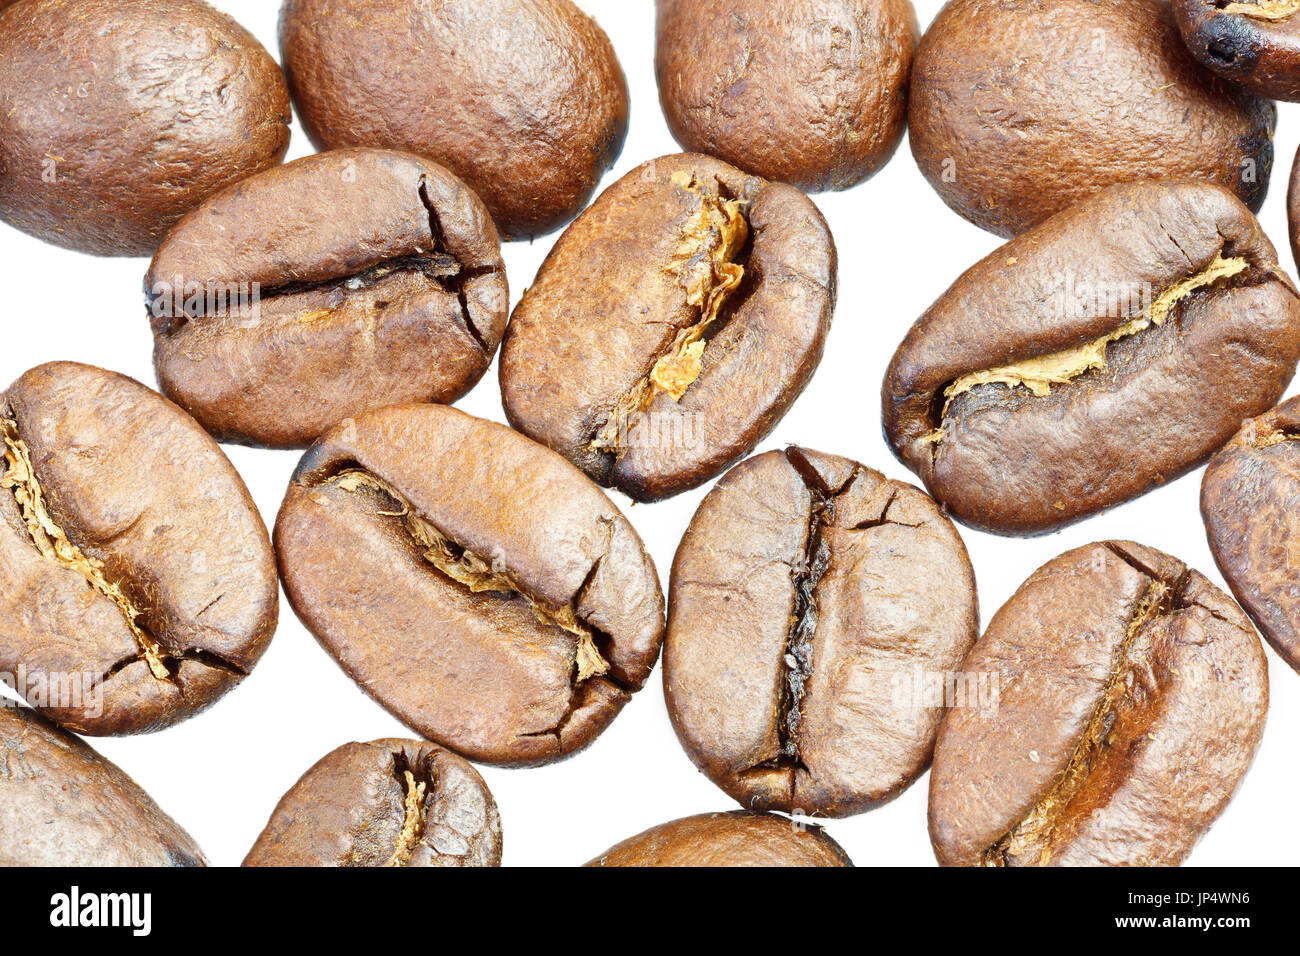 Coffee beans under microscope - extreme close up of coffee beans - Stock Image